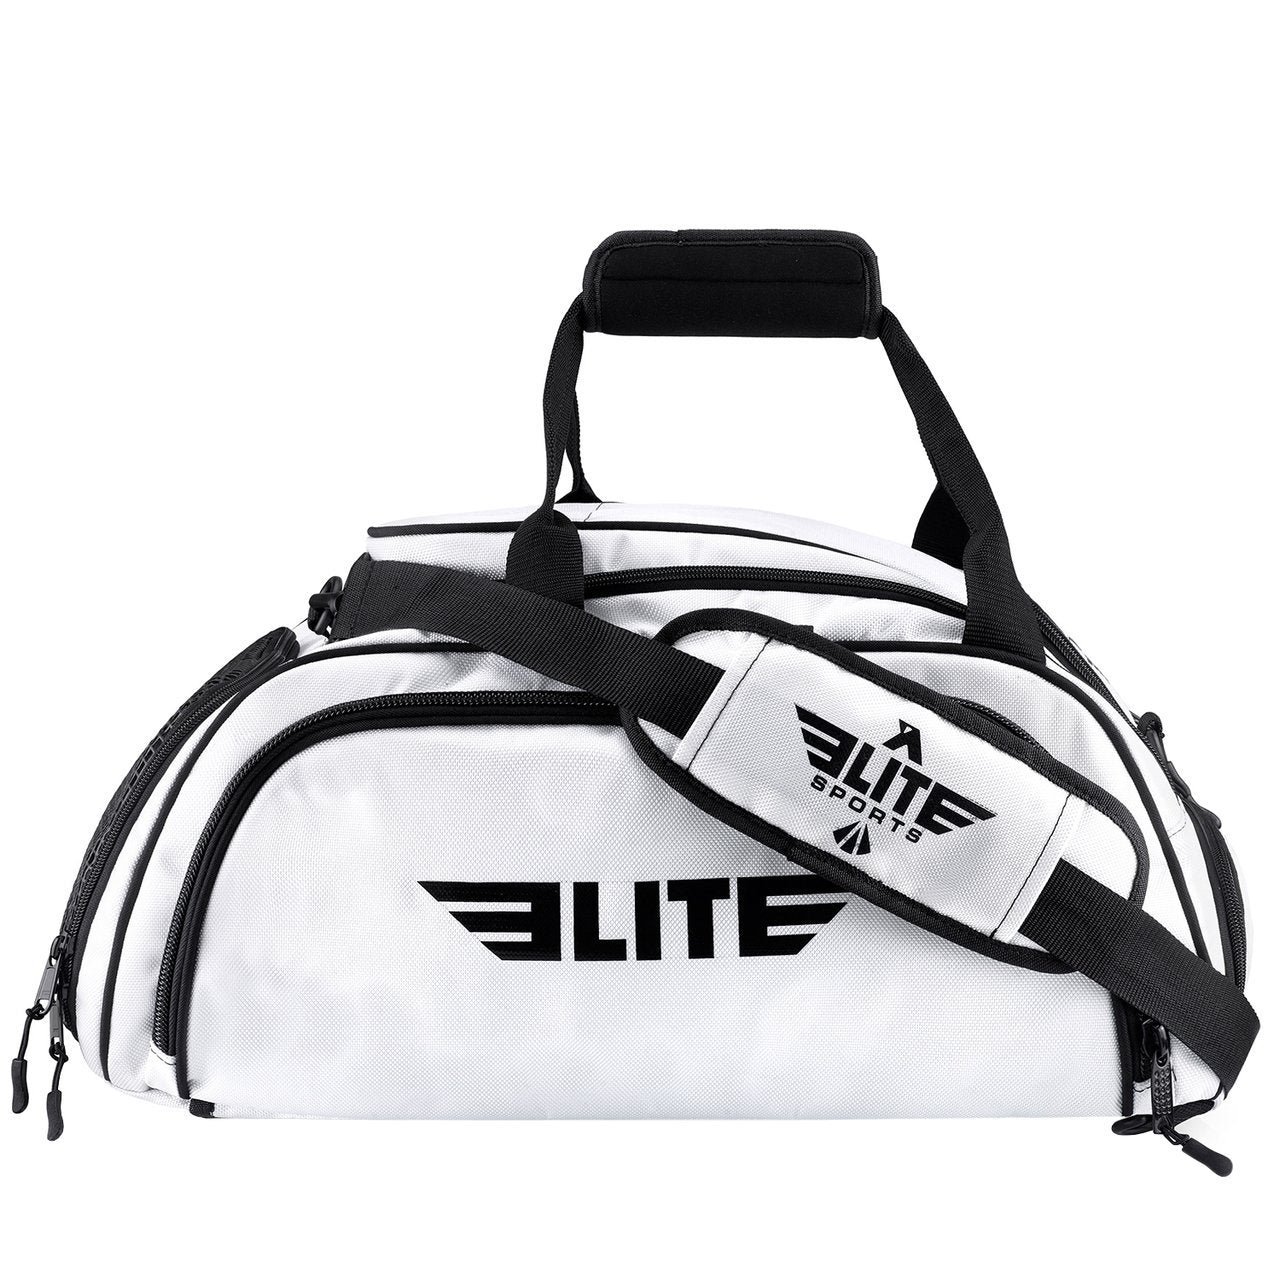 Elite Sports Warrior Series White Large Duffel Brazilian Jiu Jitsu BJJ Gear Gym Bag & Backpack